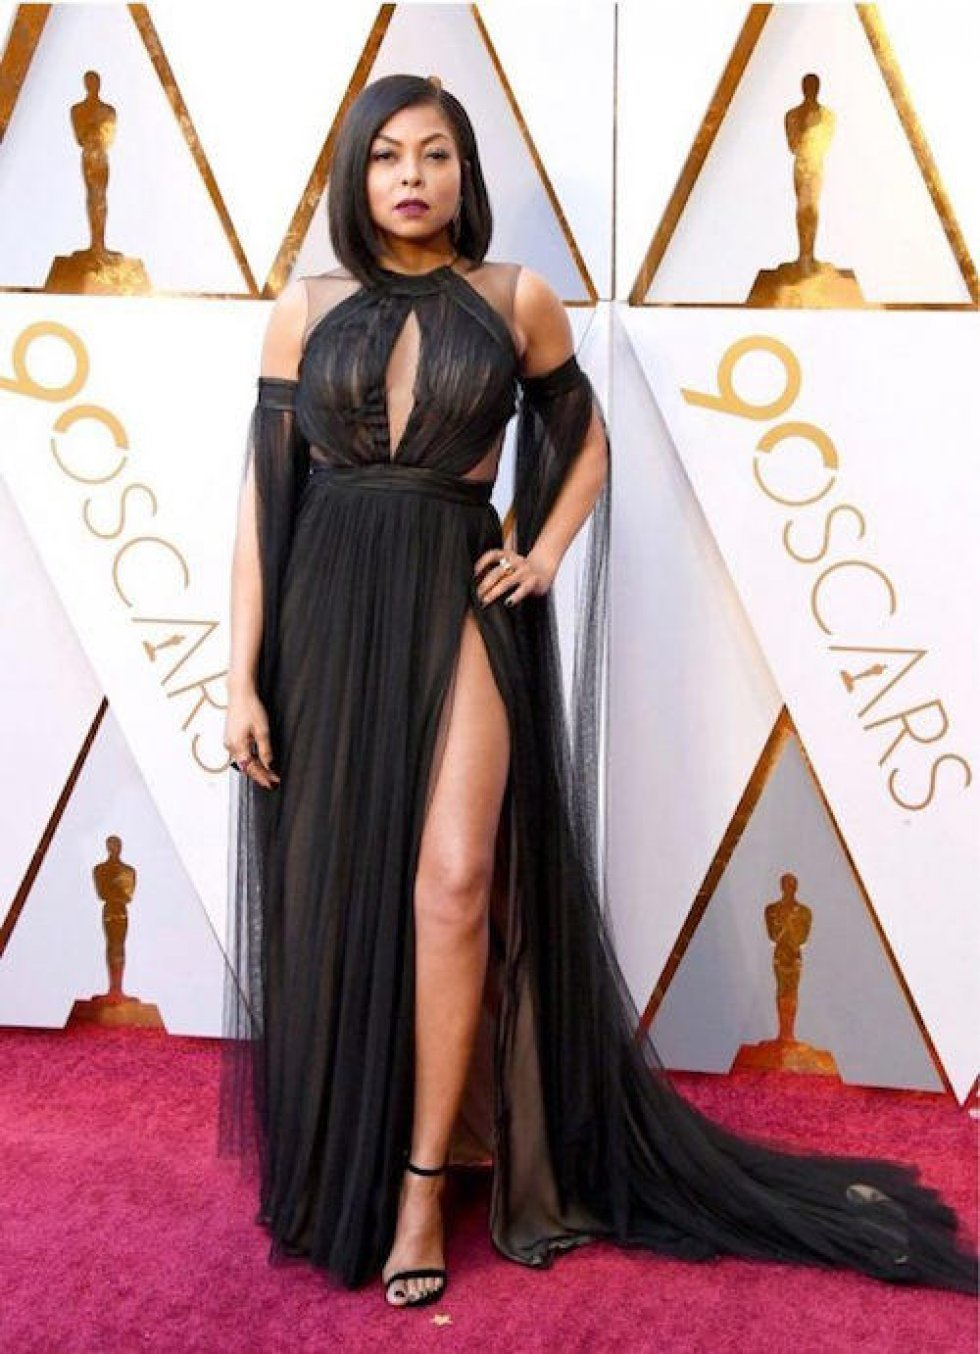 The Young, Black, and Fabulous - Oscars Red Carpet Fashion: Hvilken stjerne bar hvad?